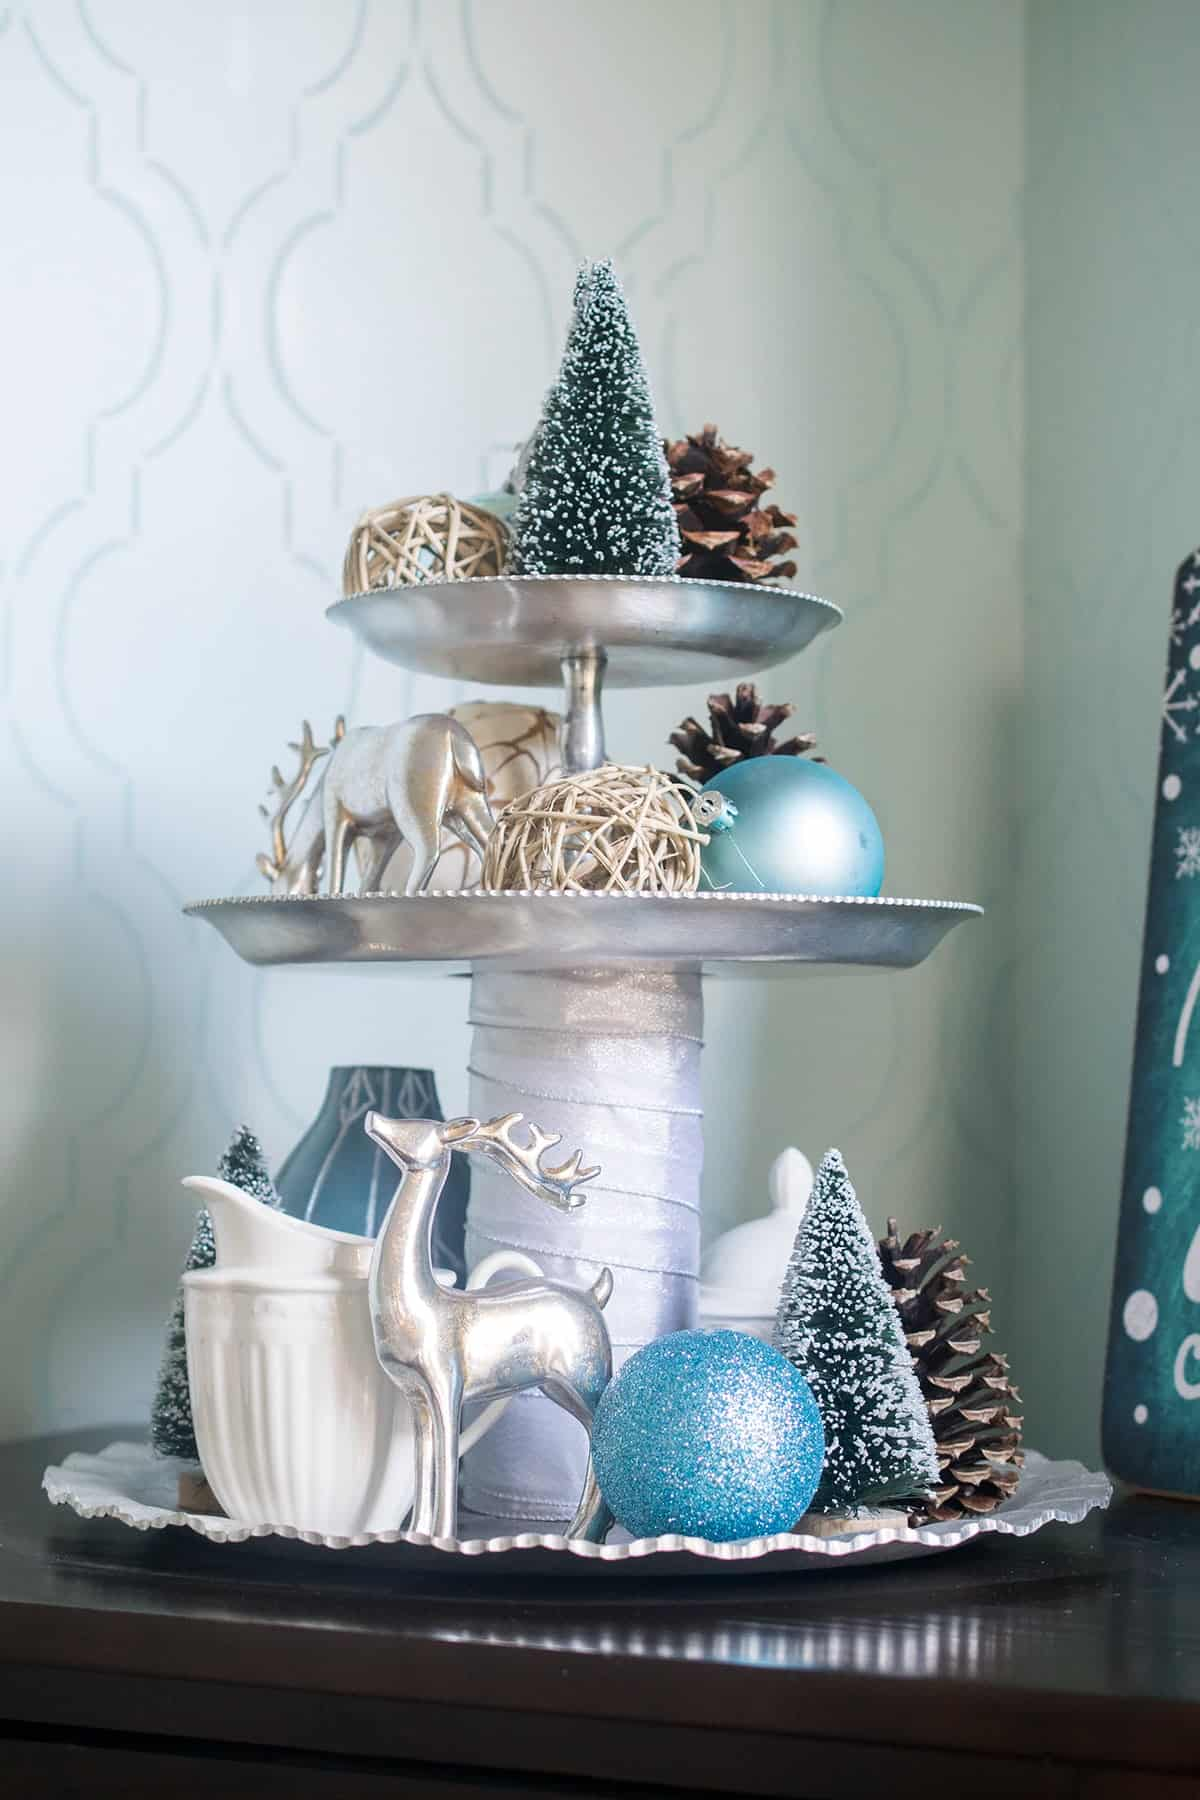 3 tiered silver stand decorated for Christmas with silver deer, pinecones, blue ornaments, and bottle brush trees